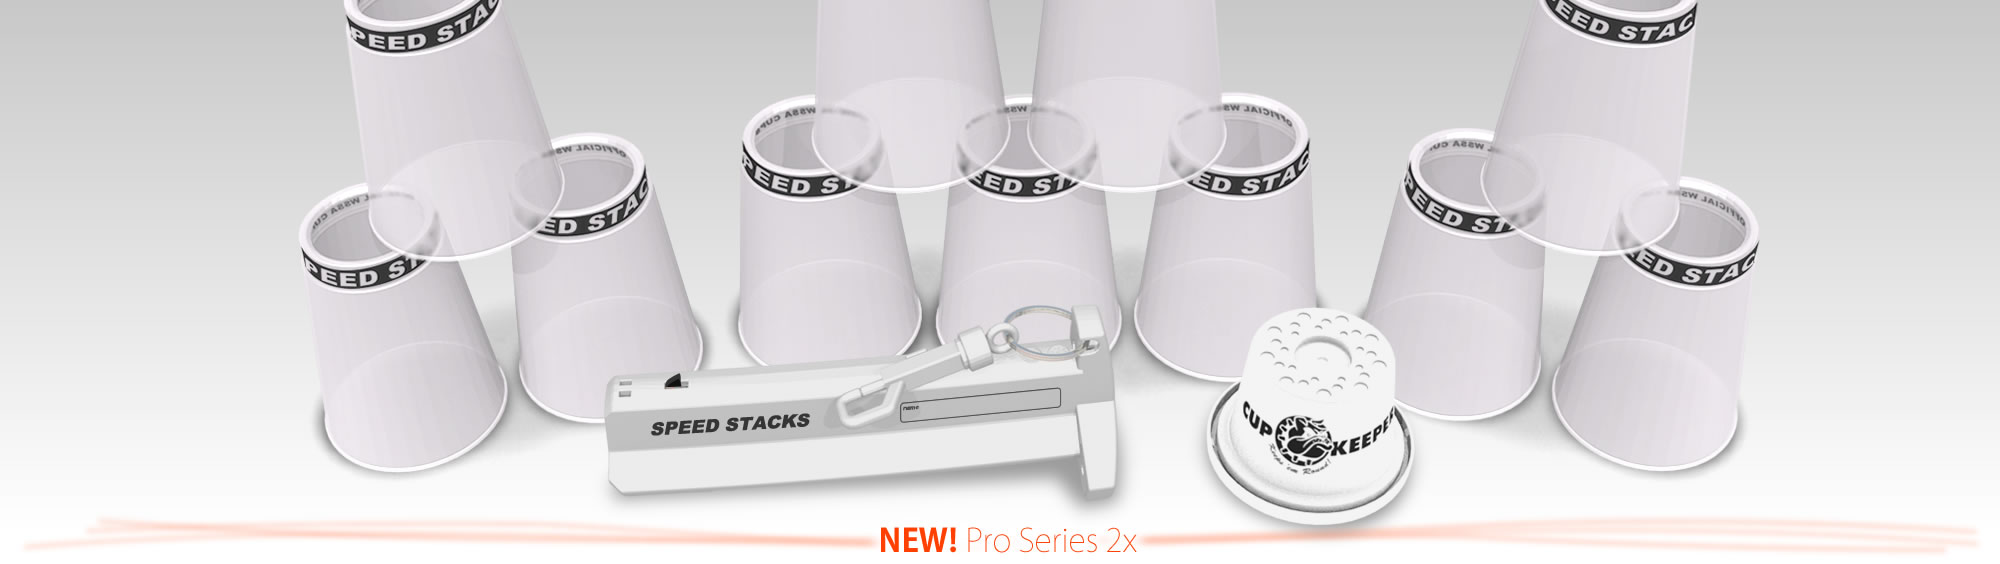 Speed Stacks Pro Series 2x